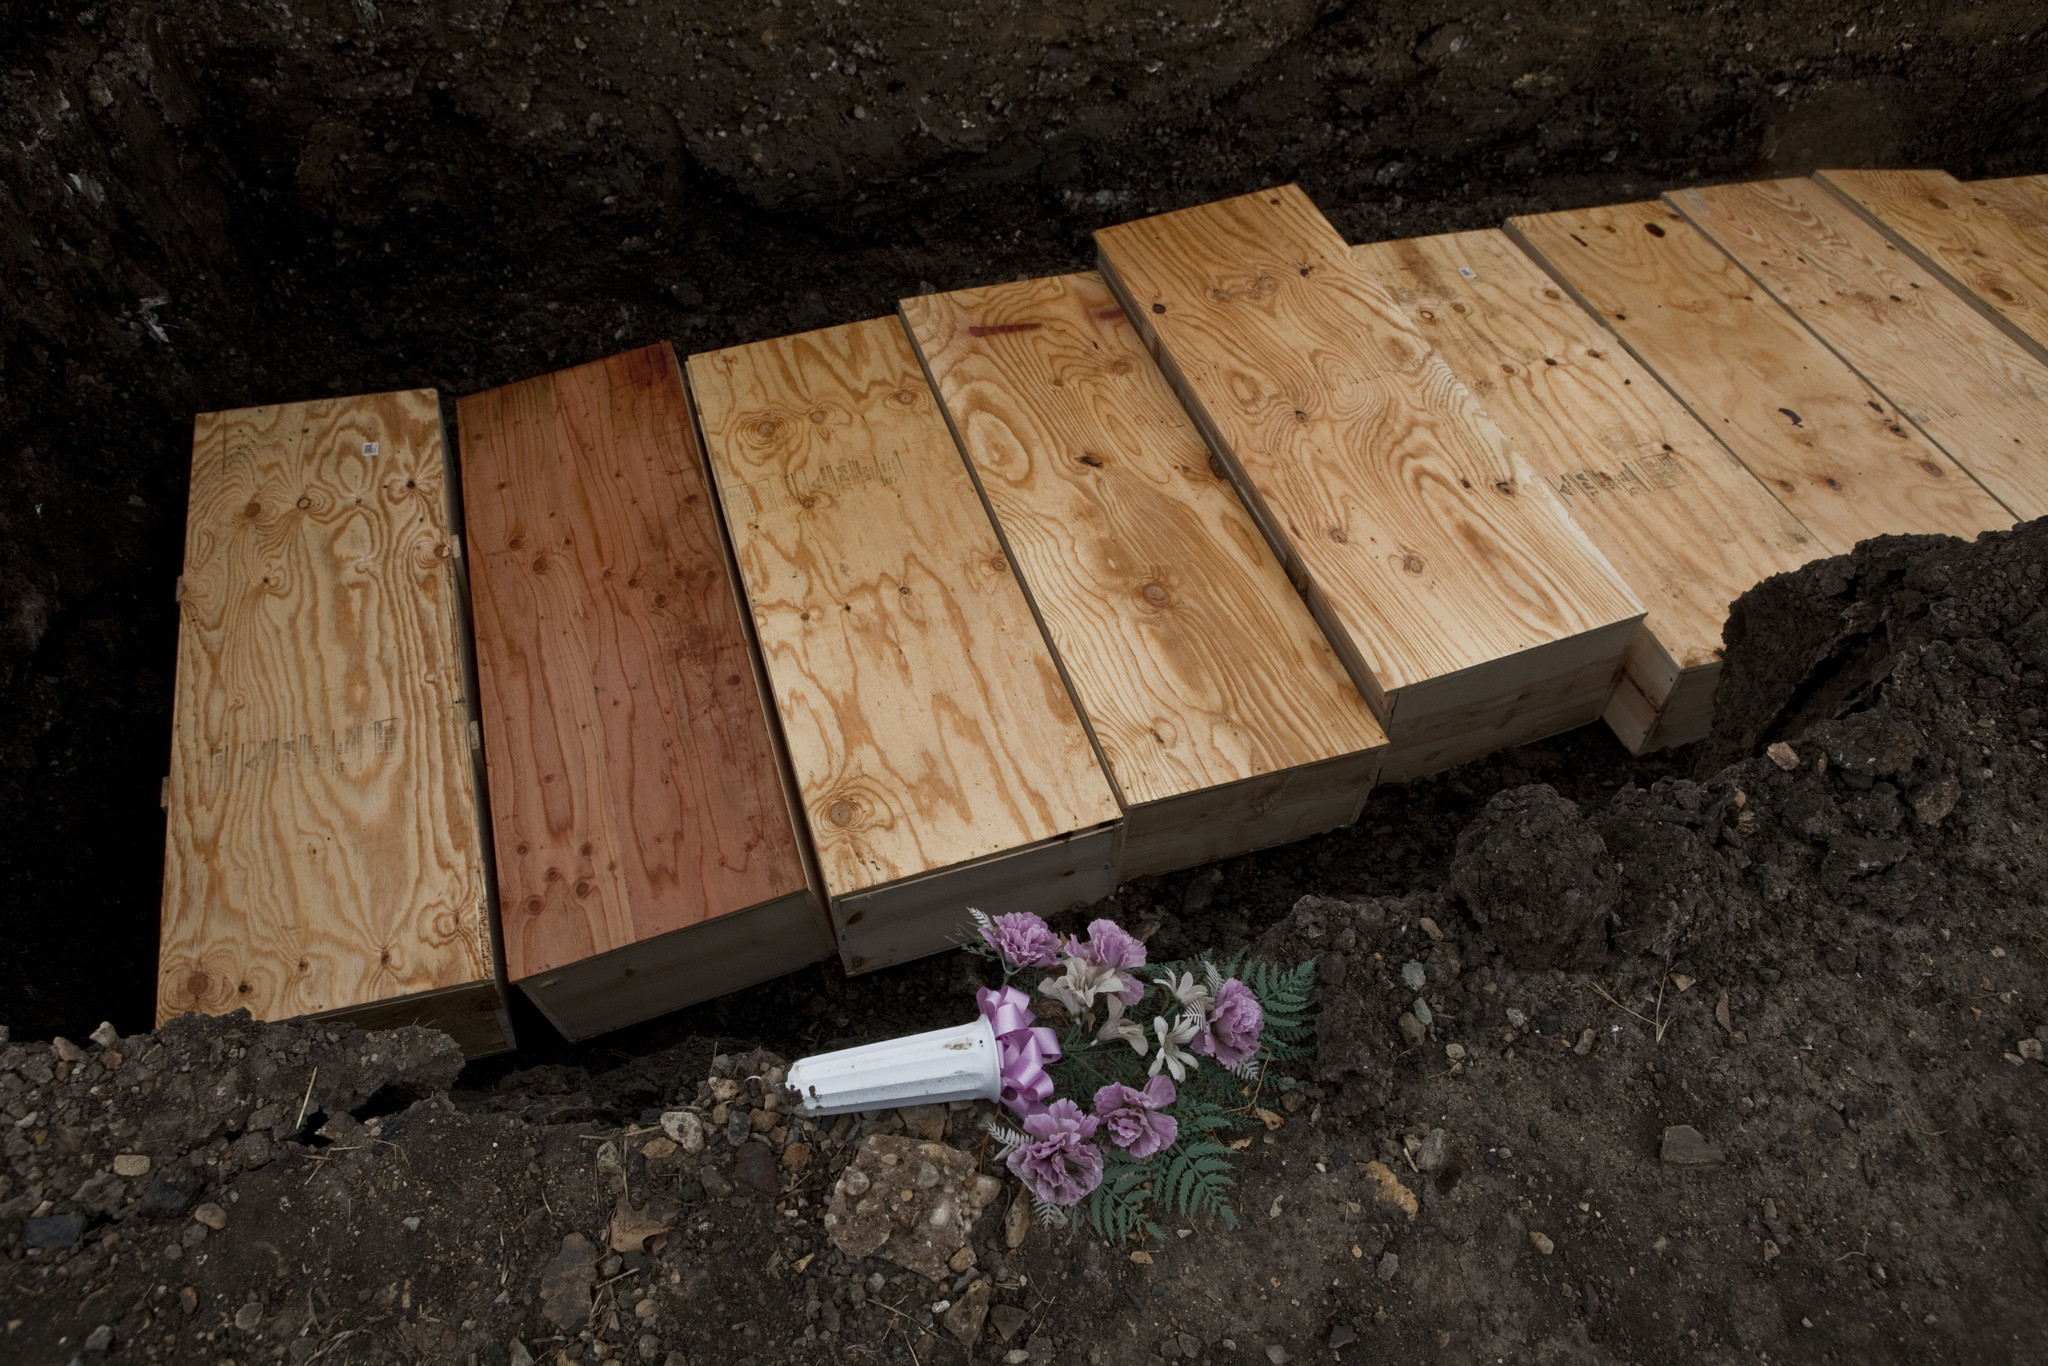 Cook County agrees to pricier burial contract - Chicago Tribune